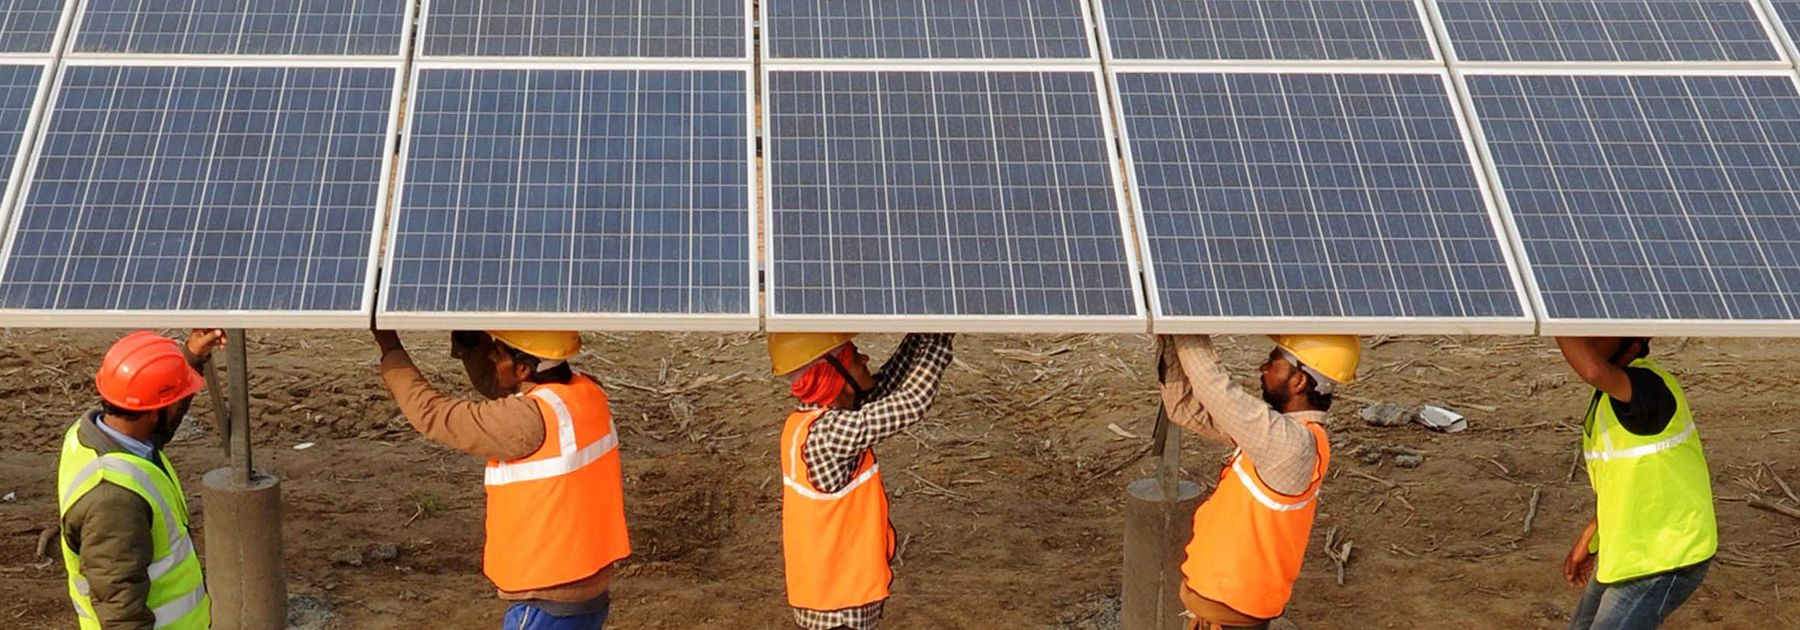 Workers construct part of the France-India Solar Direct Punjab Solar Park project in Muradwala. (NARINDER NANU/AFP/Getty Images